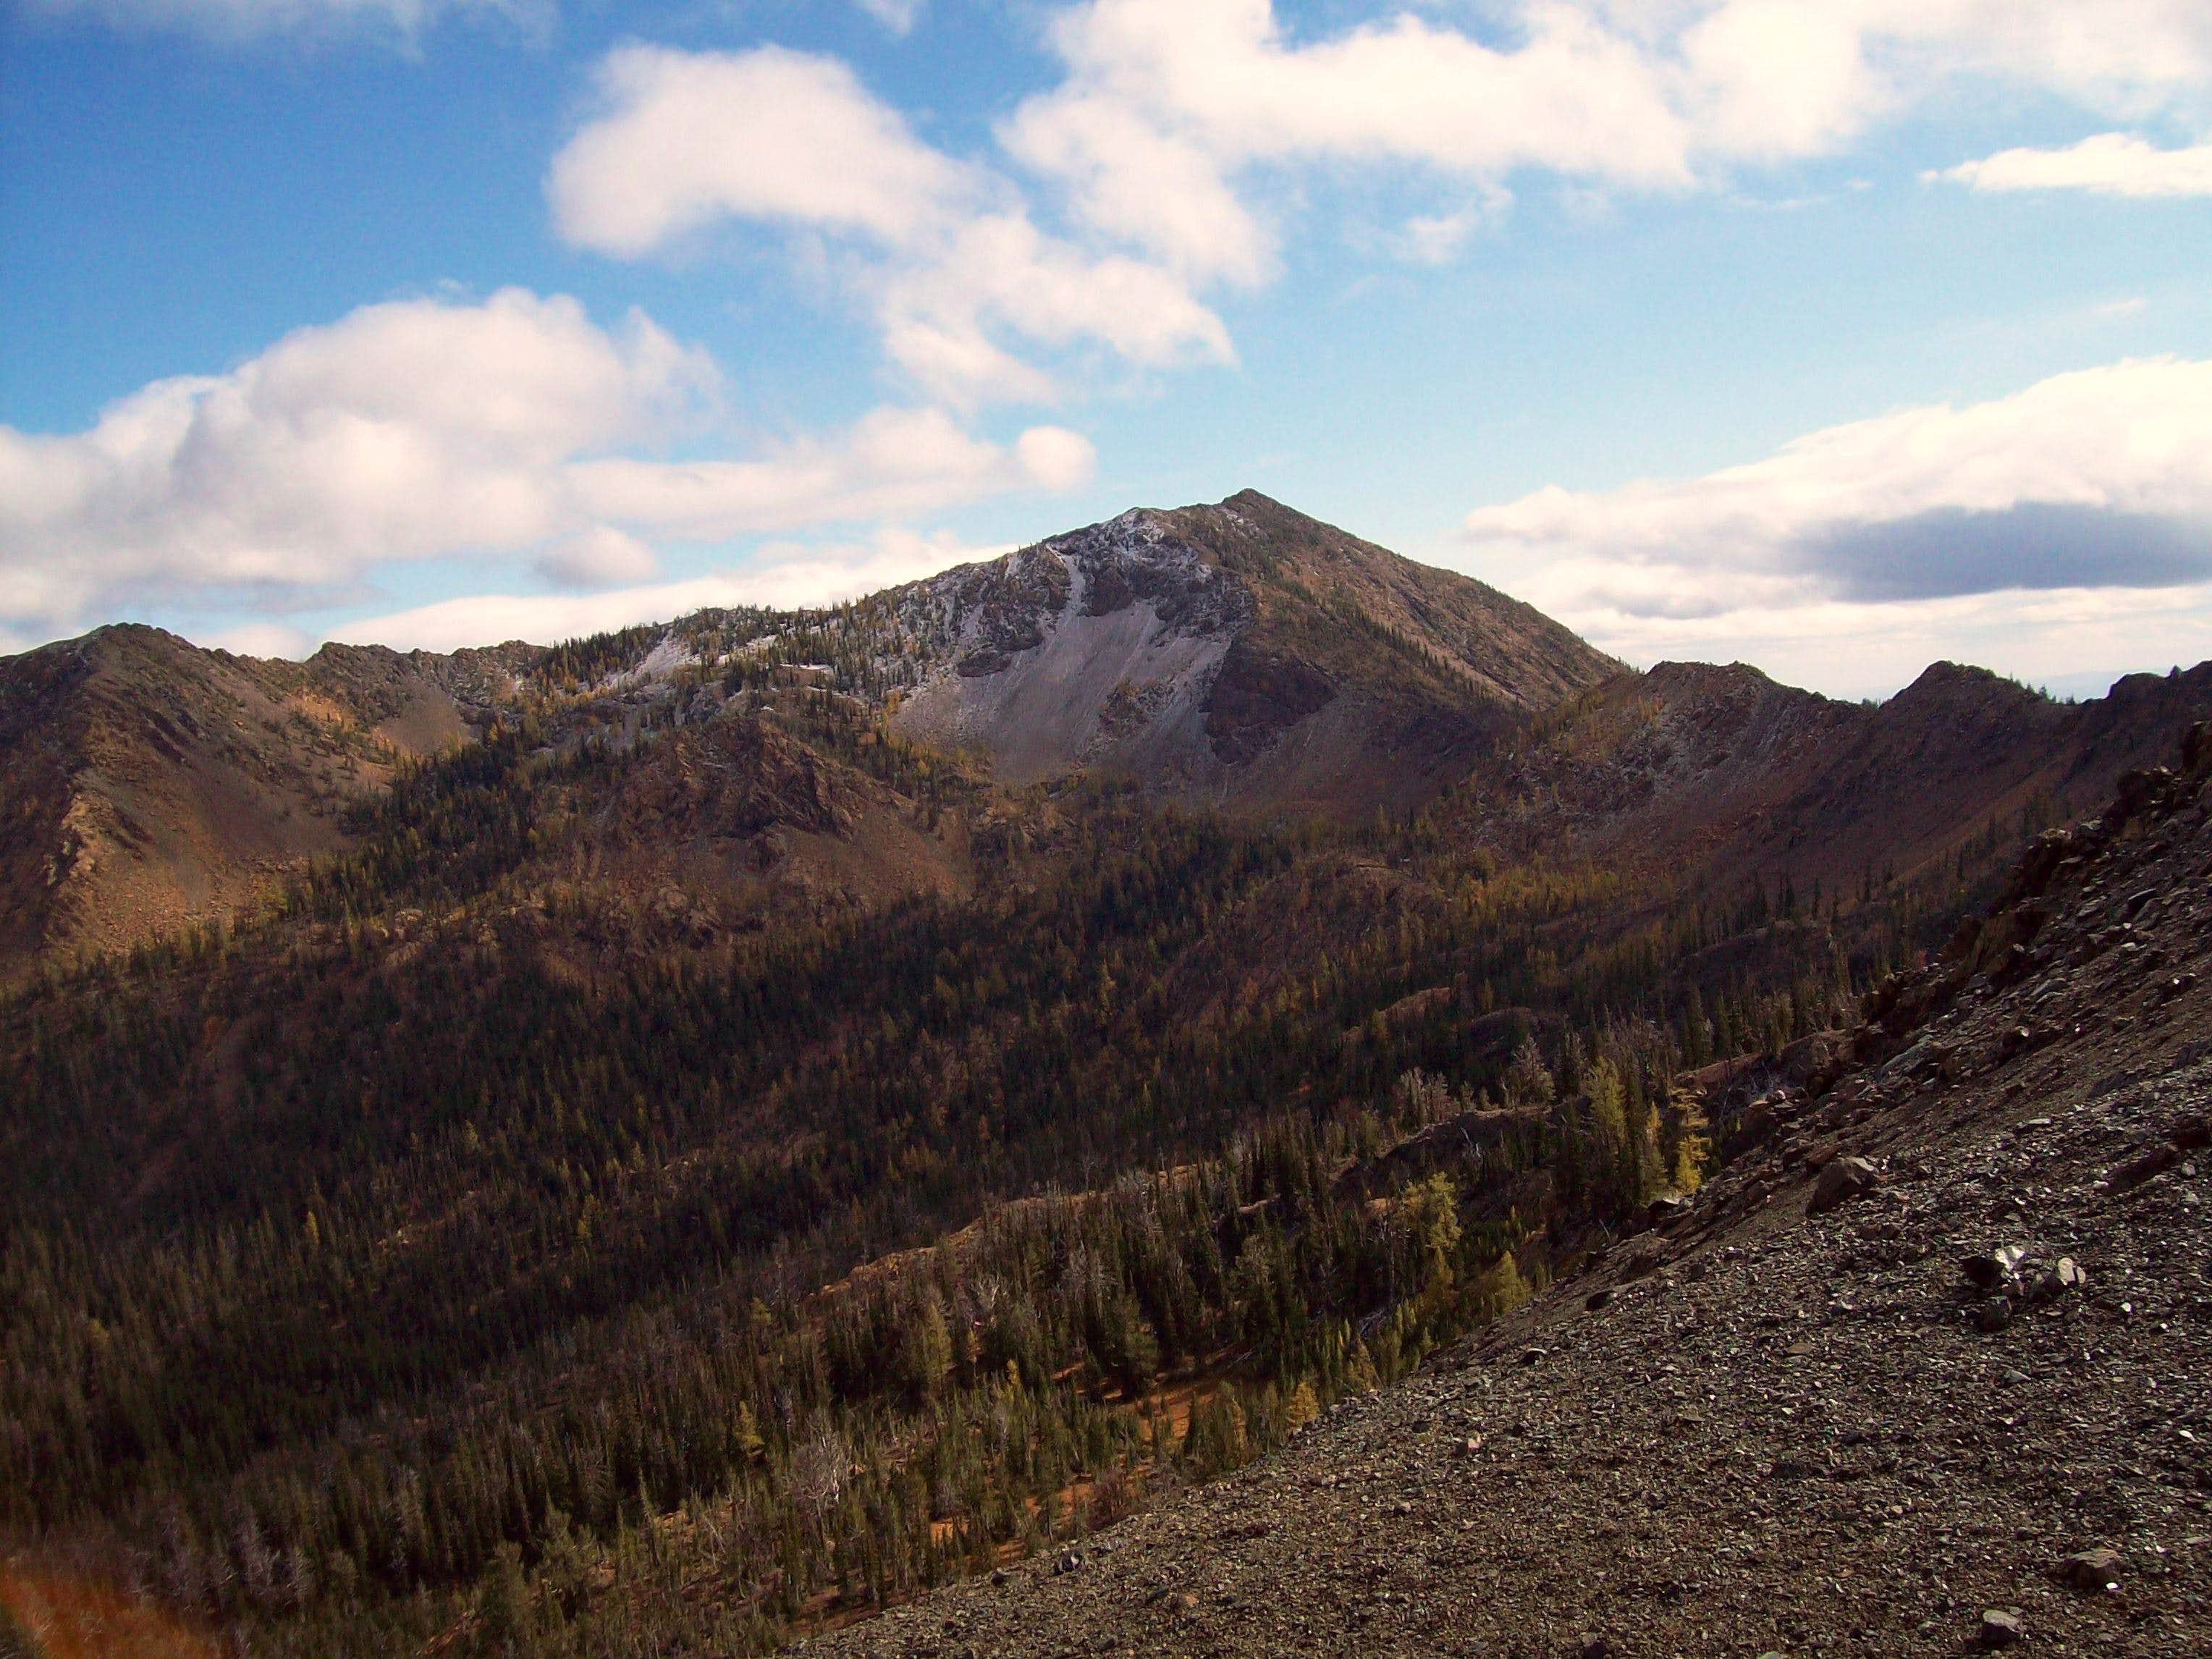 Earl Peak and Iron Peak